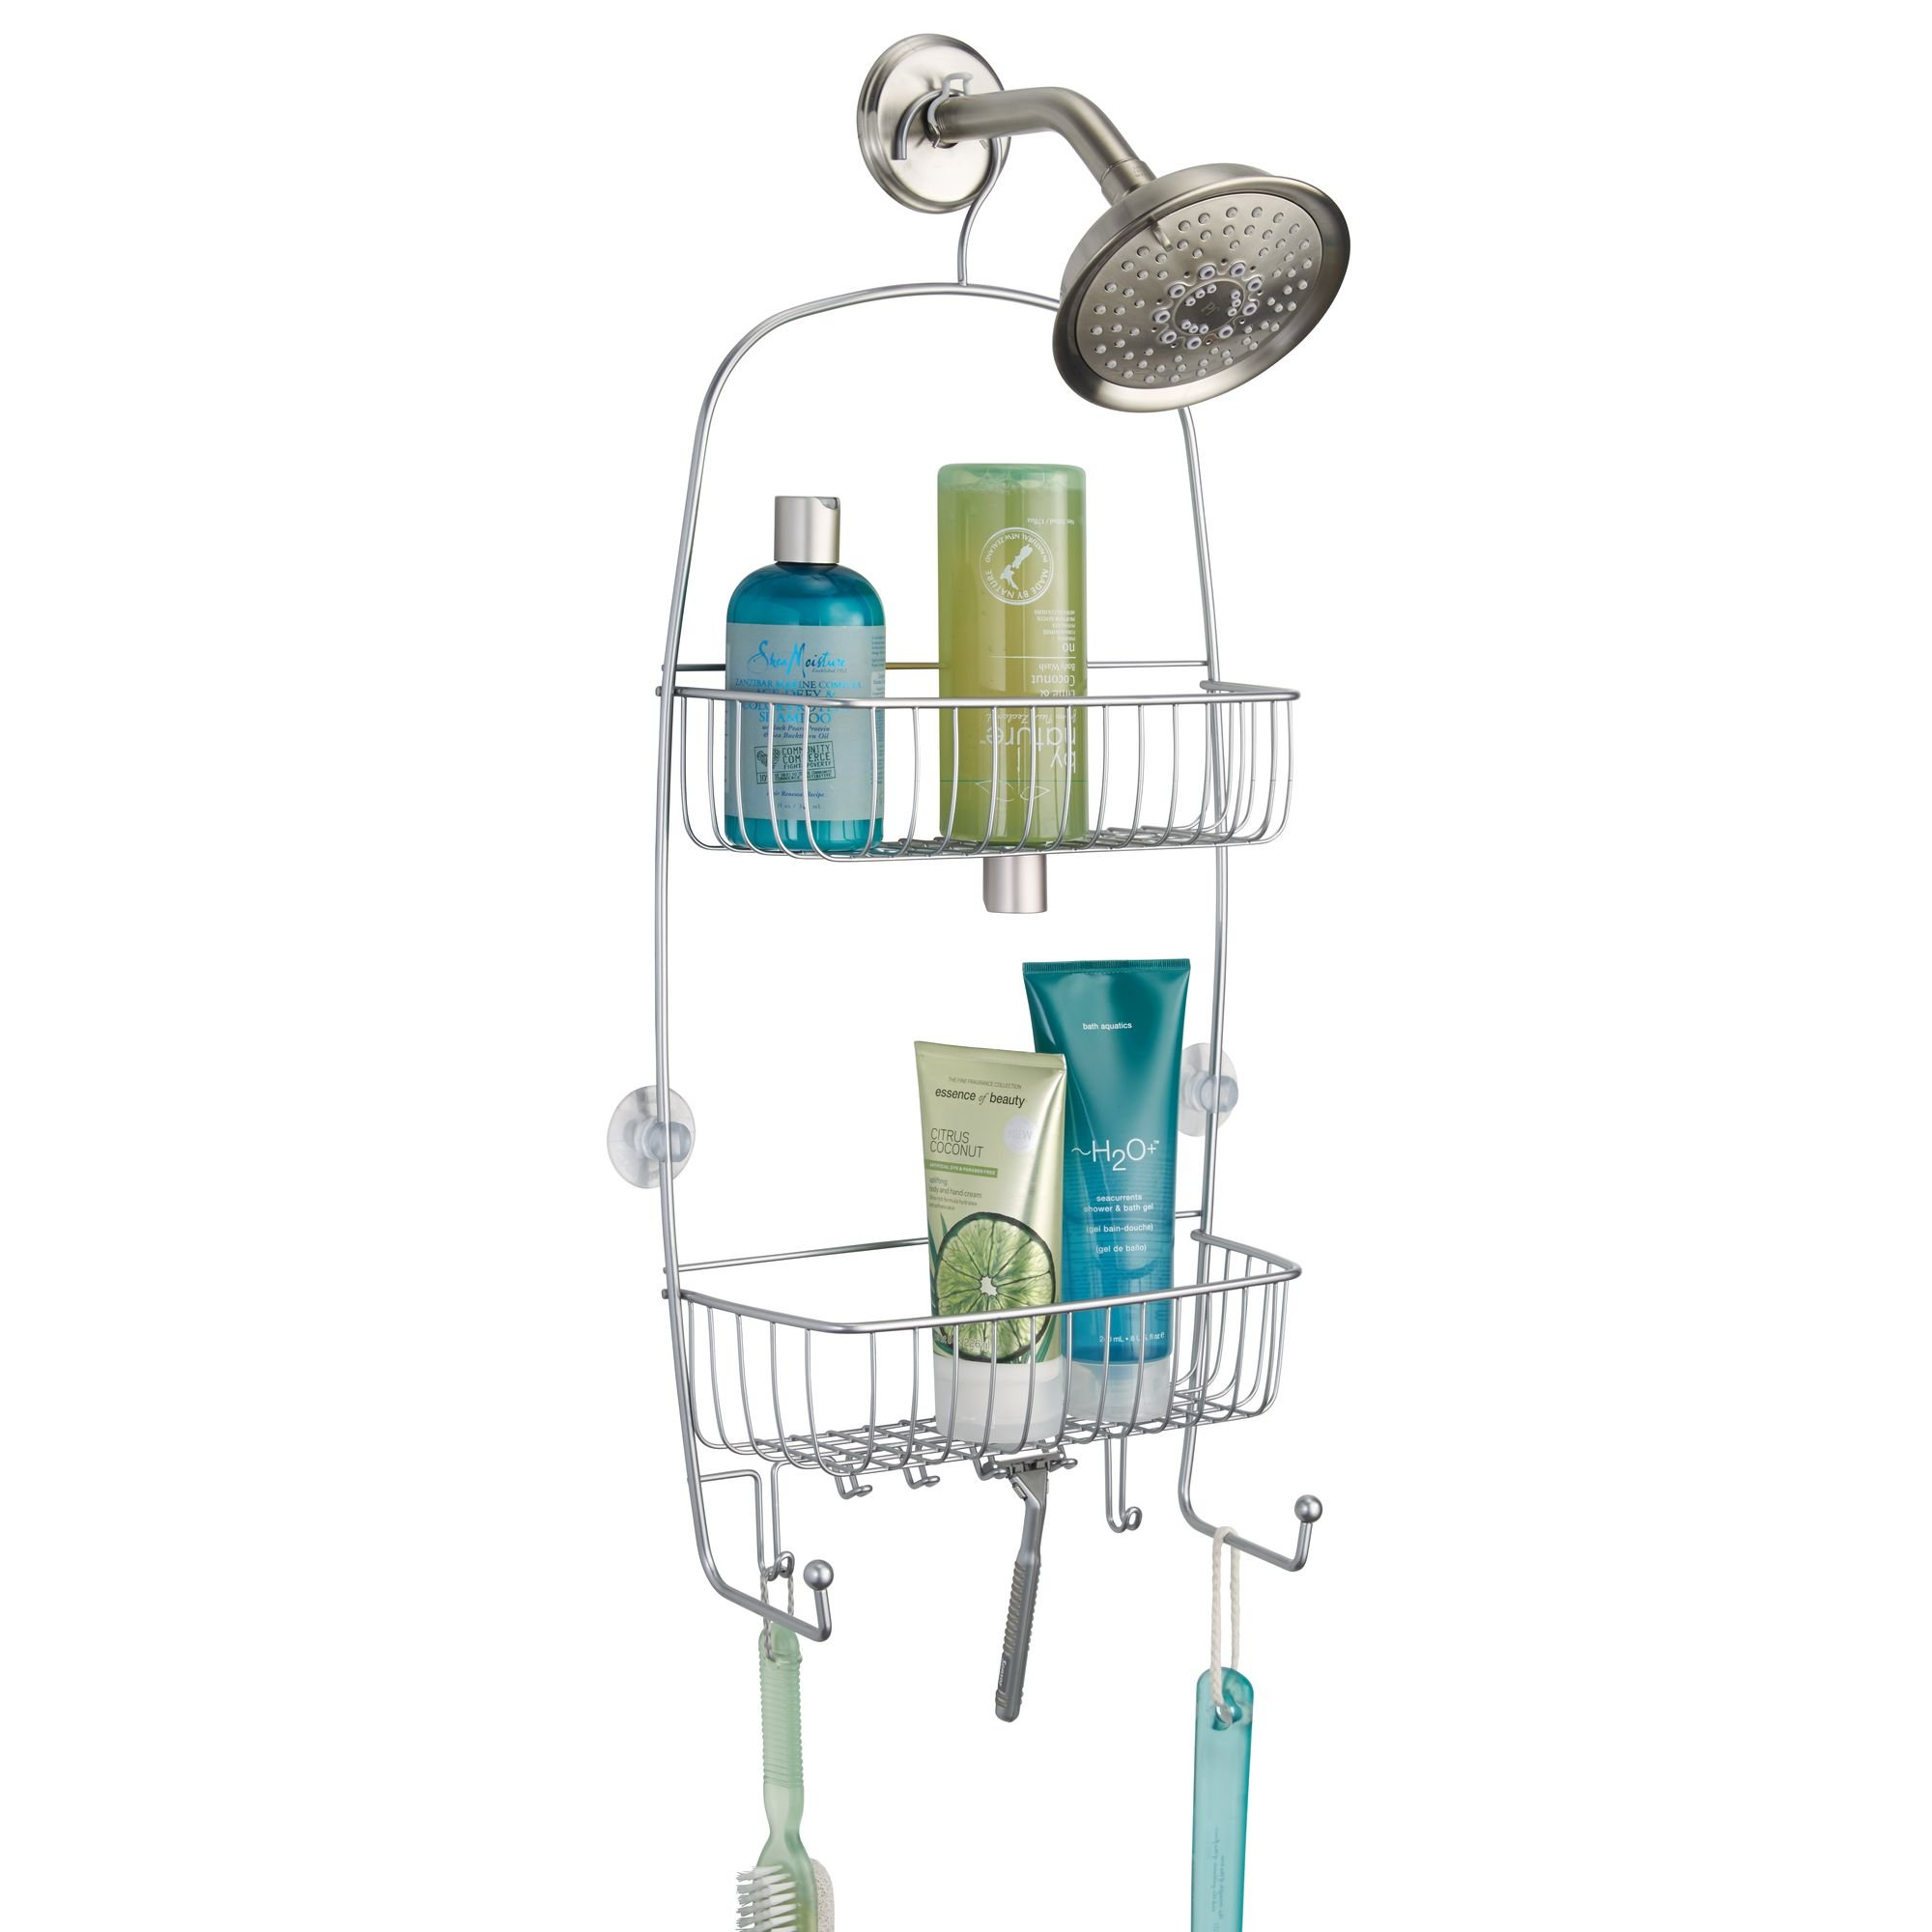 mDesign Extra-Large Hanging Shower Caddy Organizer with Hooks and Baskets � Two Tier, Silver